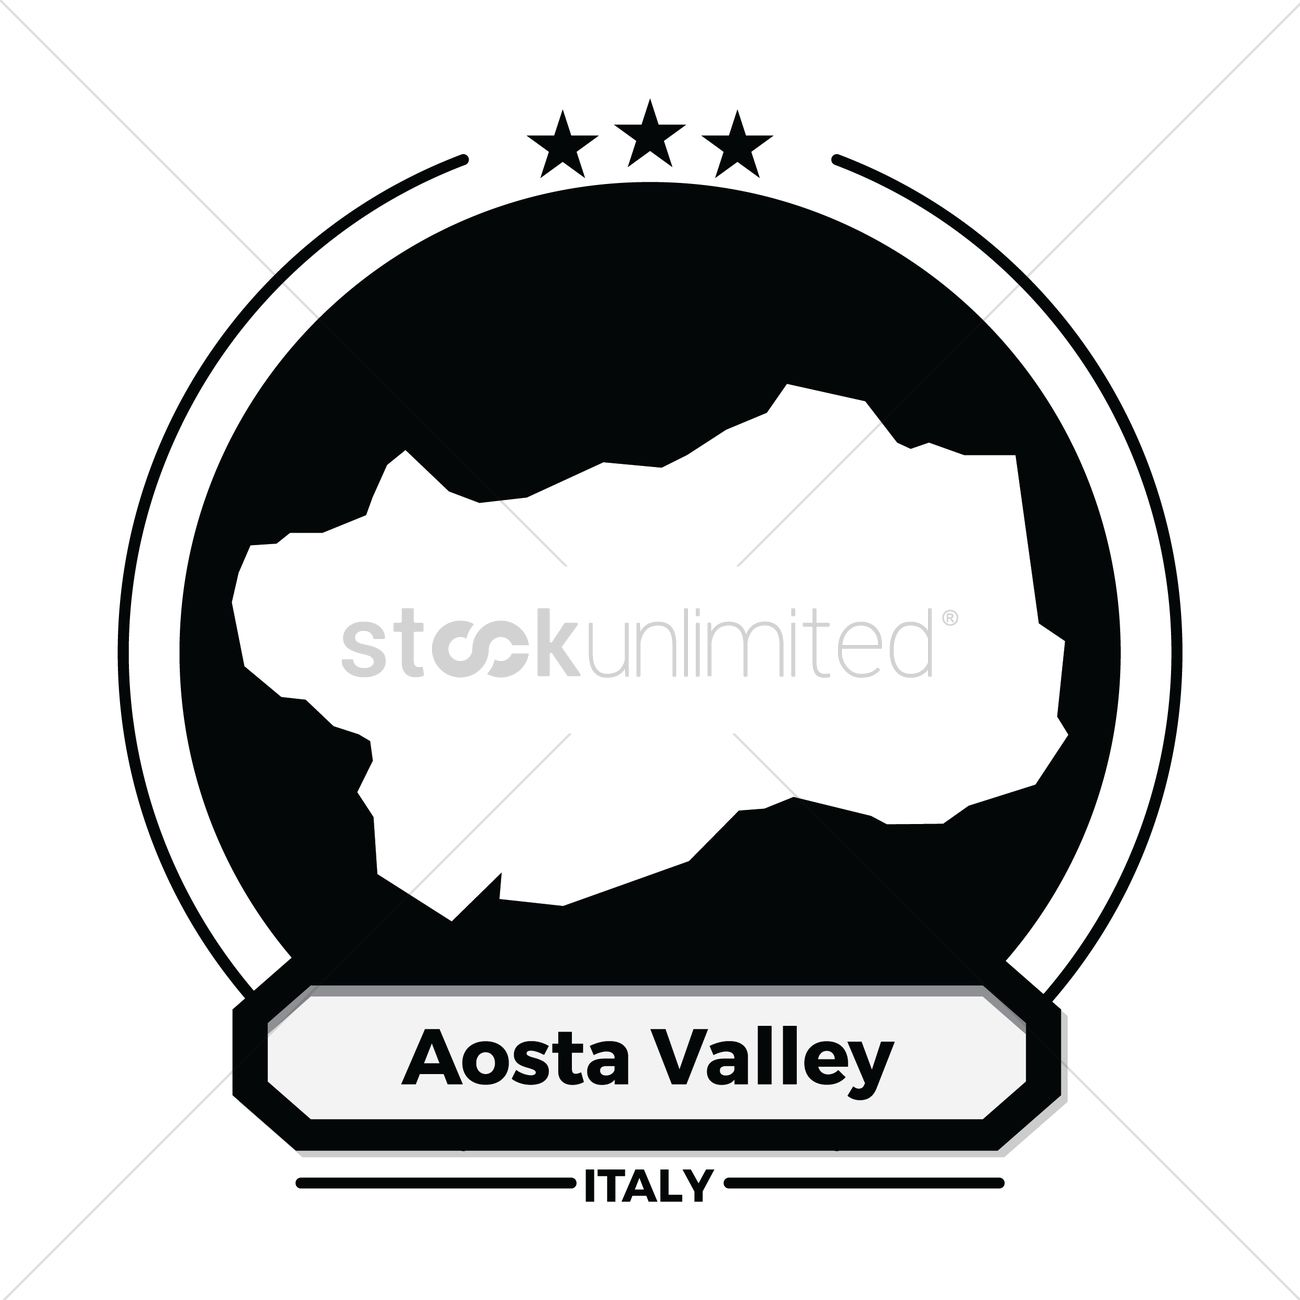 Aosta valley map label Vector Image.